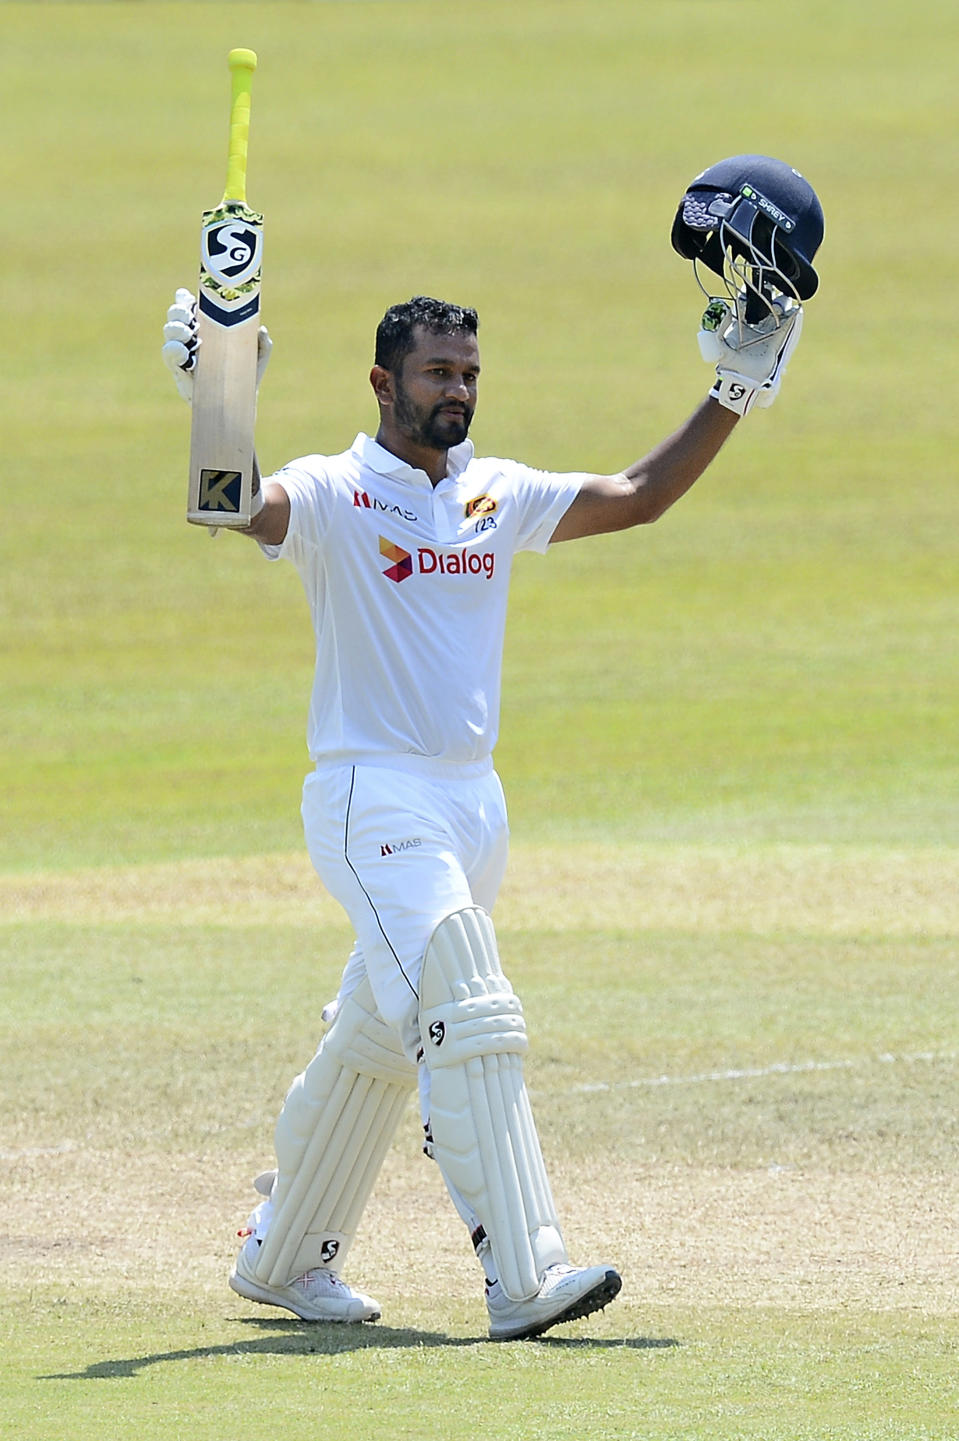 Sri Lankan captain Dimuth Karunaratne raises his bat as he celebrates scoring a century during the fourth day of the first test cricket match between Sri Lanka and Bangladesh in Pallekele, Sri Lanka, Saturday, April 24, 2021.( AP Photo/Sameera Peiris)